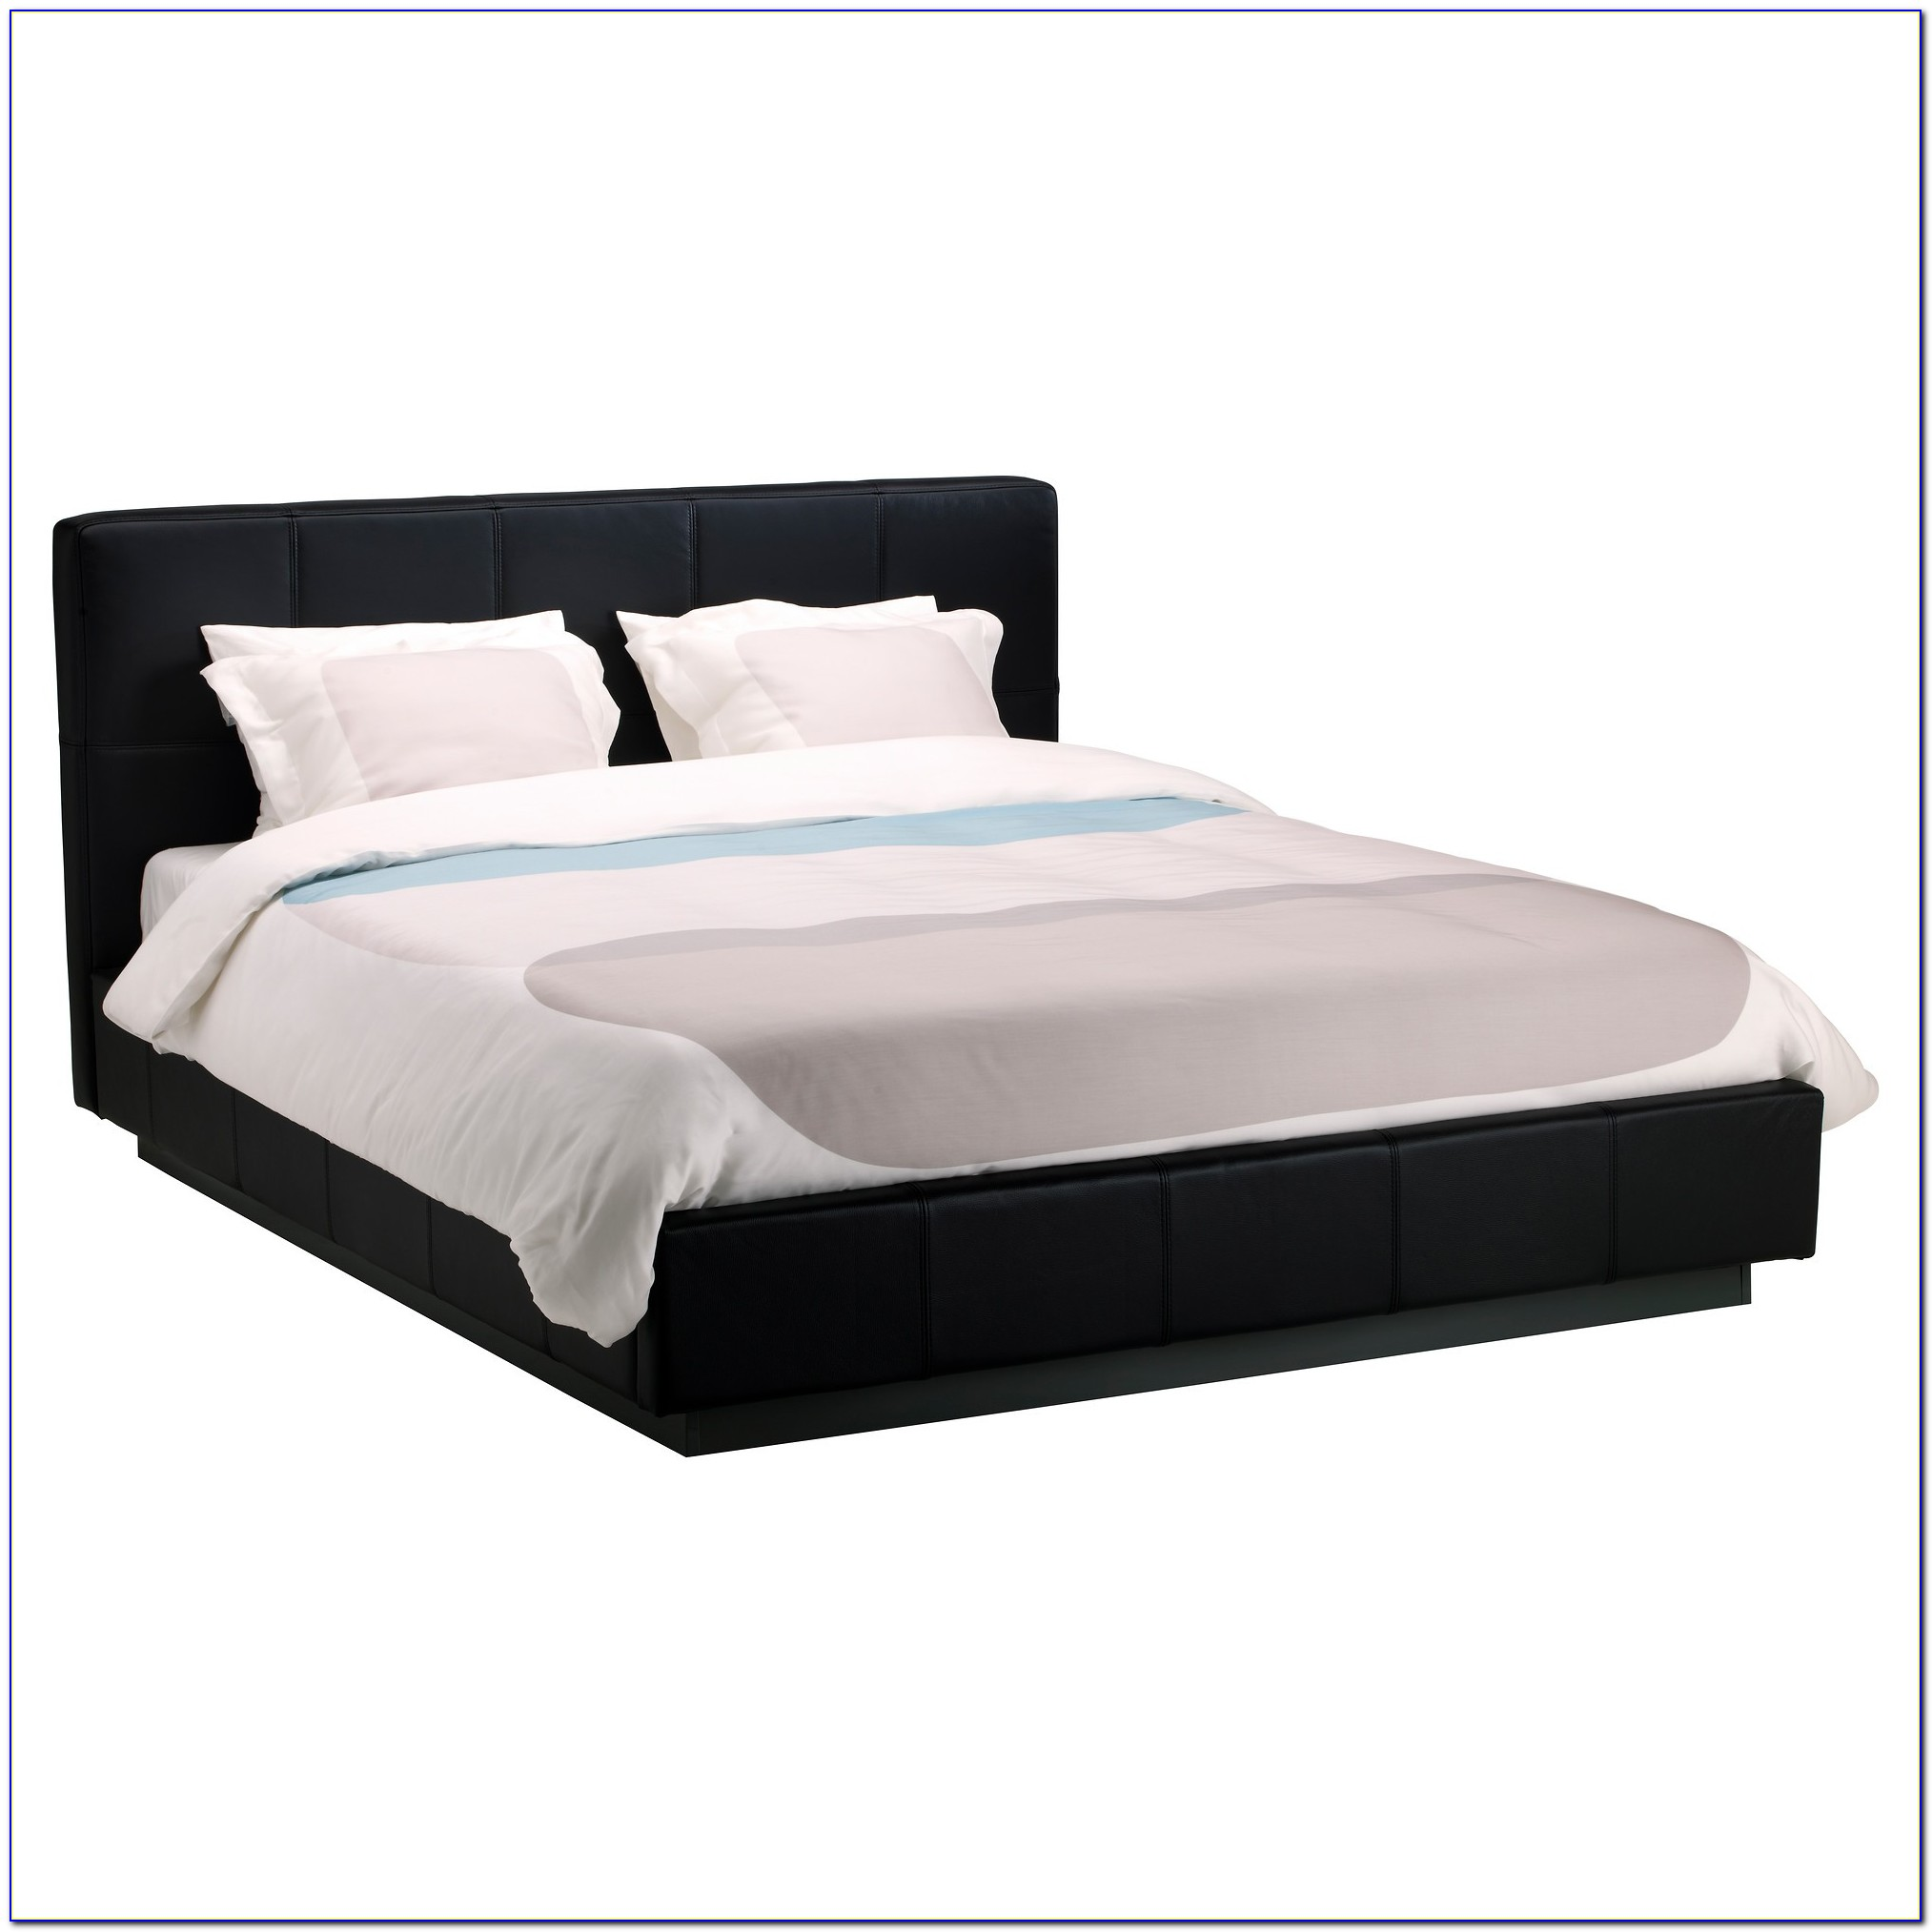 Bed Frame Queen Headboard Footboard